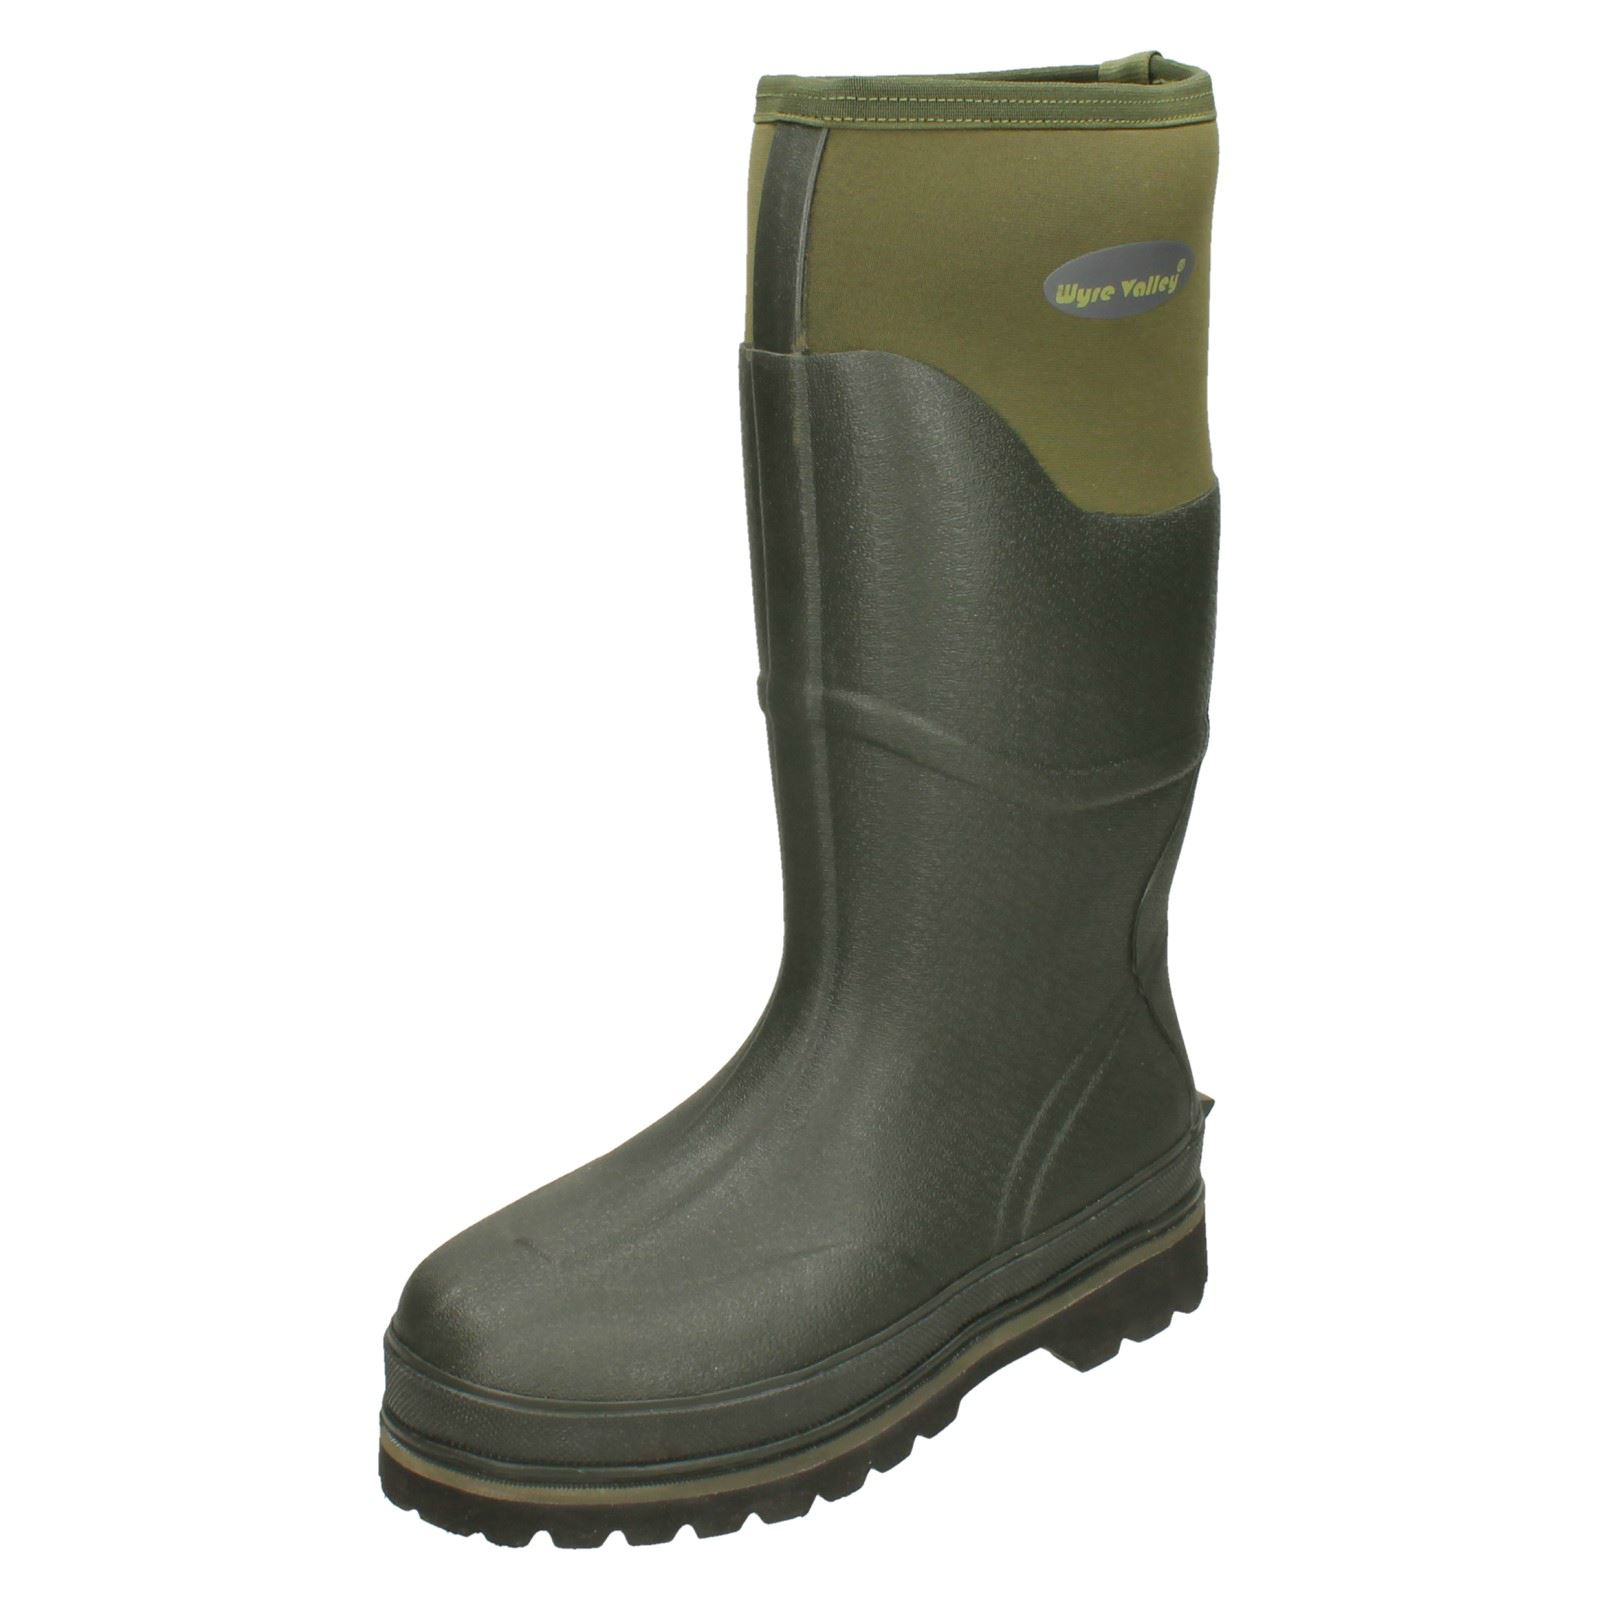 Mens Wyre Valley Trent Outdoor Boots